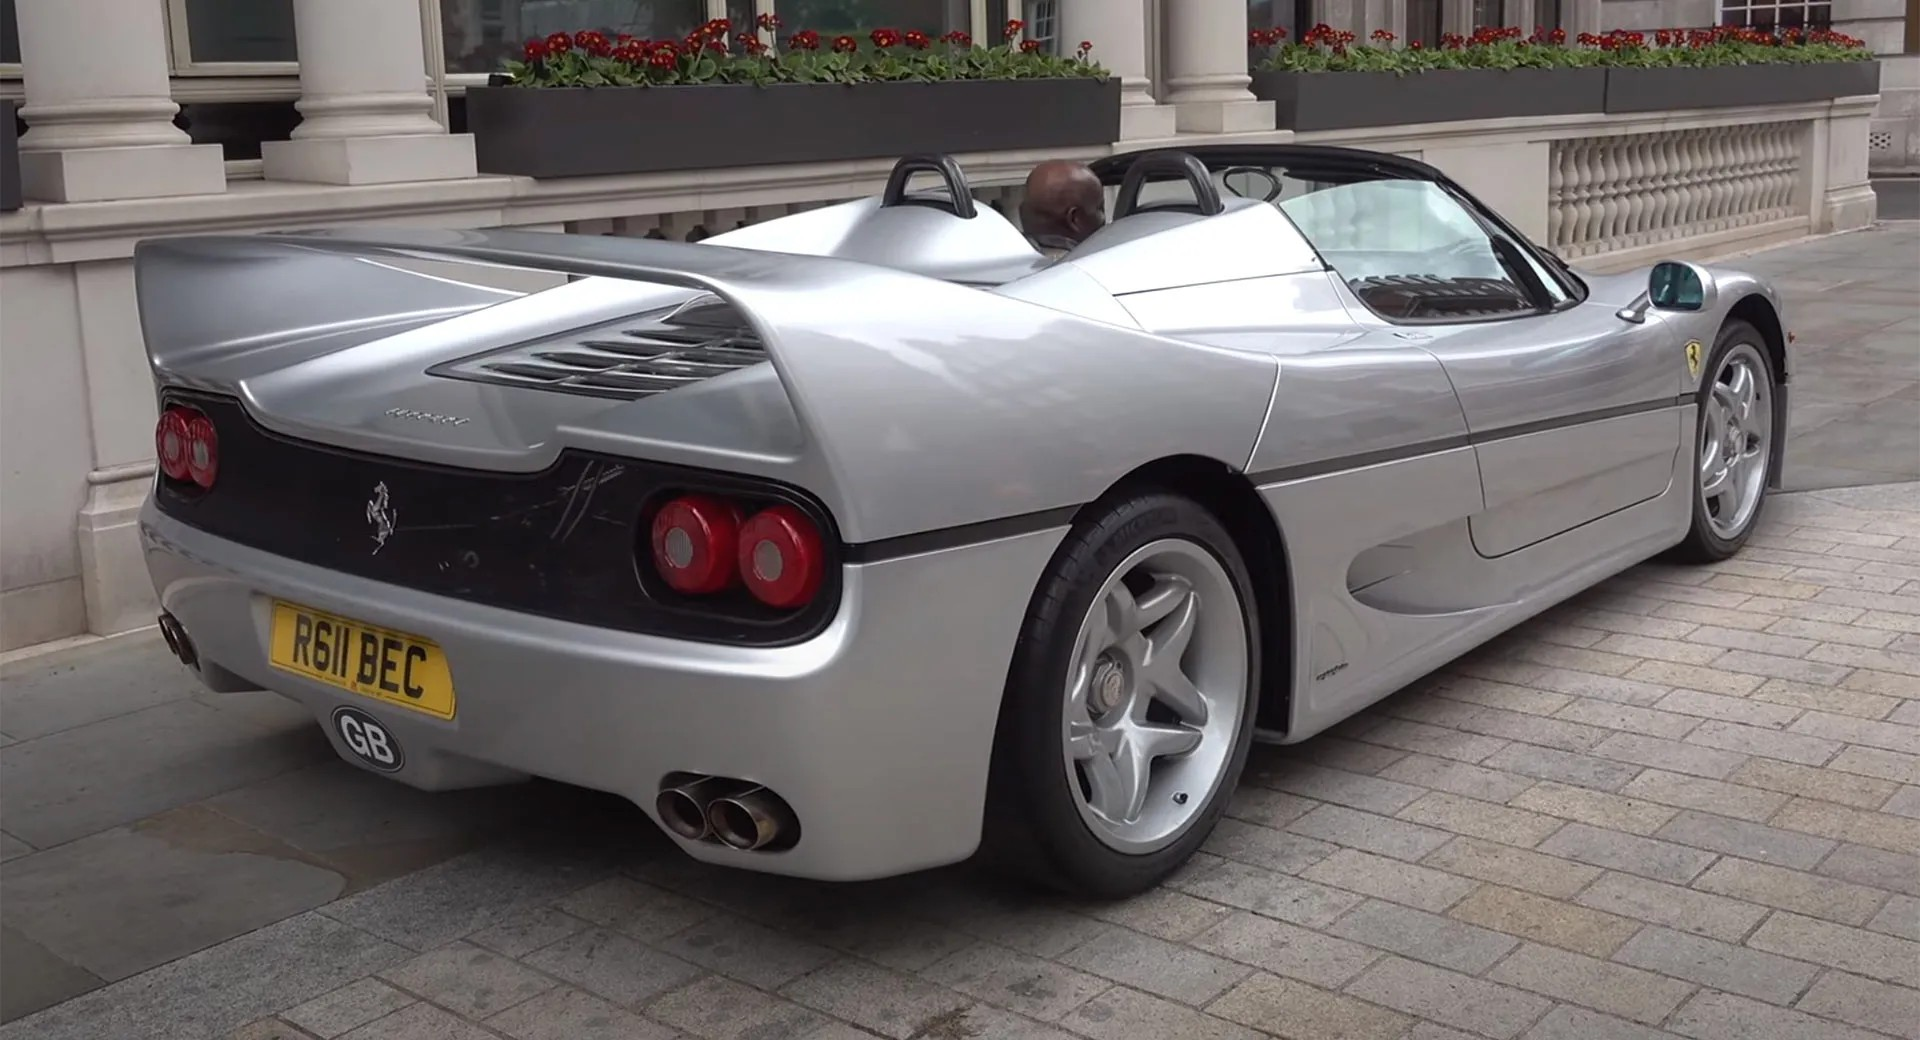 Ferrari has graced the world with dozens of amazing supercars, and the F50 continues to be regarded as one of the best. The owner of this example from London wanted everyone around to feel envy, so he swapped the OEM exhaust out for a Tubi Style straight pipe.